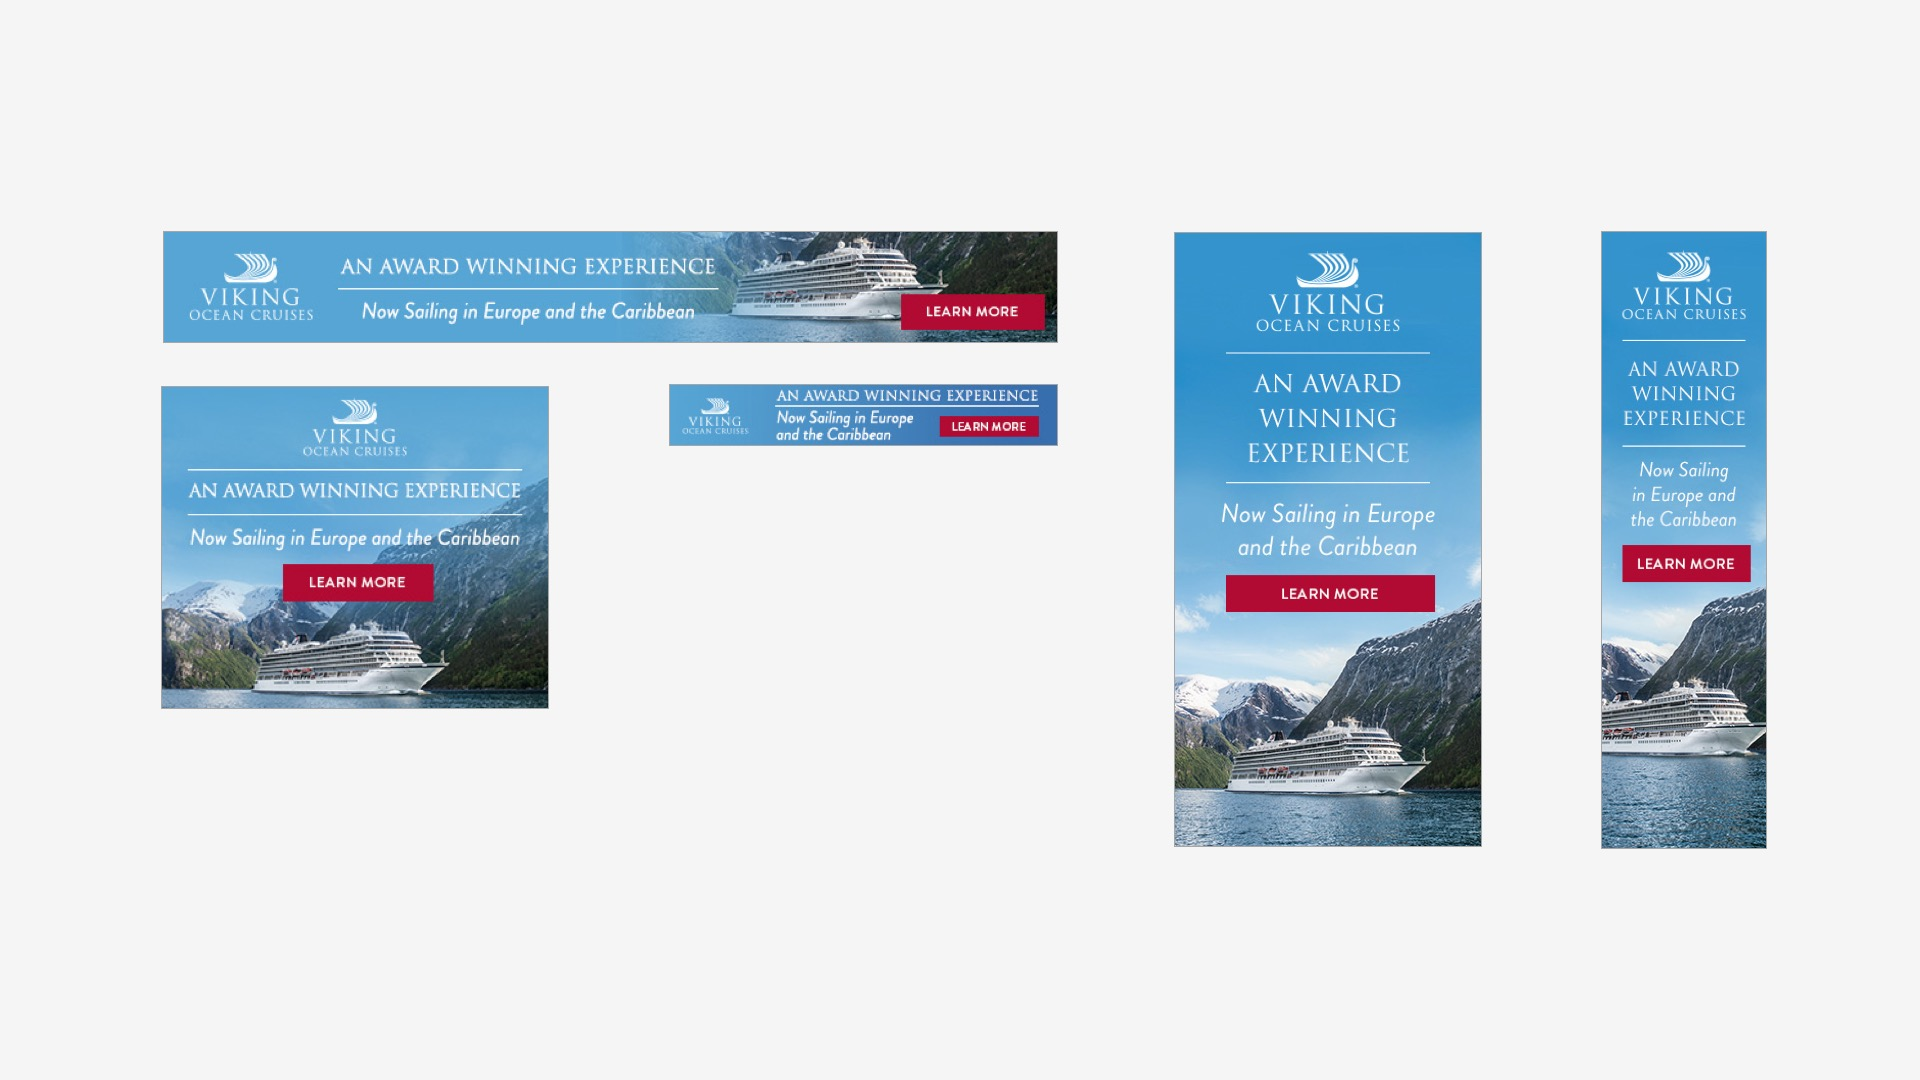 Viking Cruises: Oceans Awards Campaign Banners